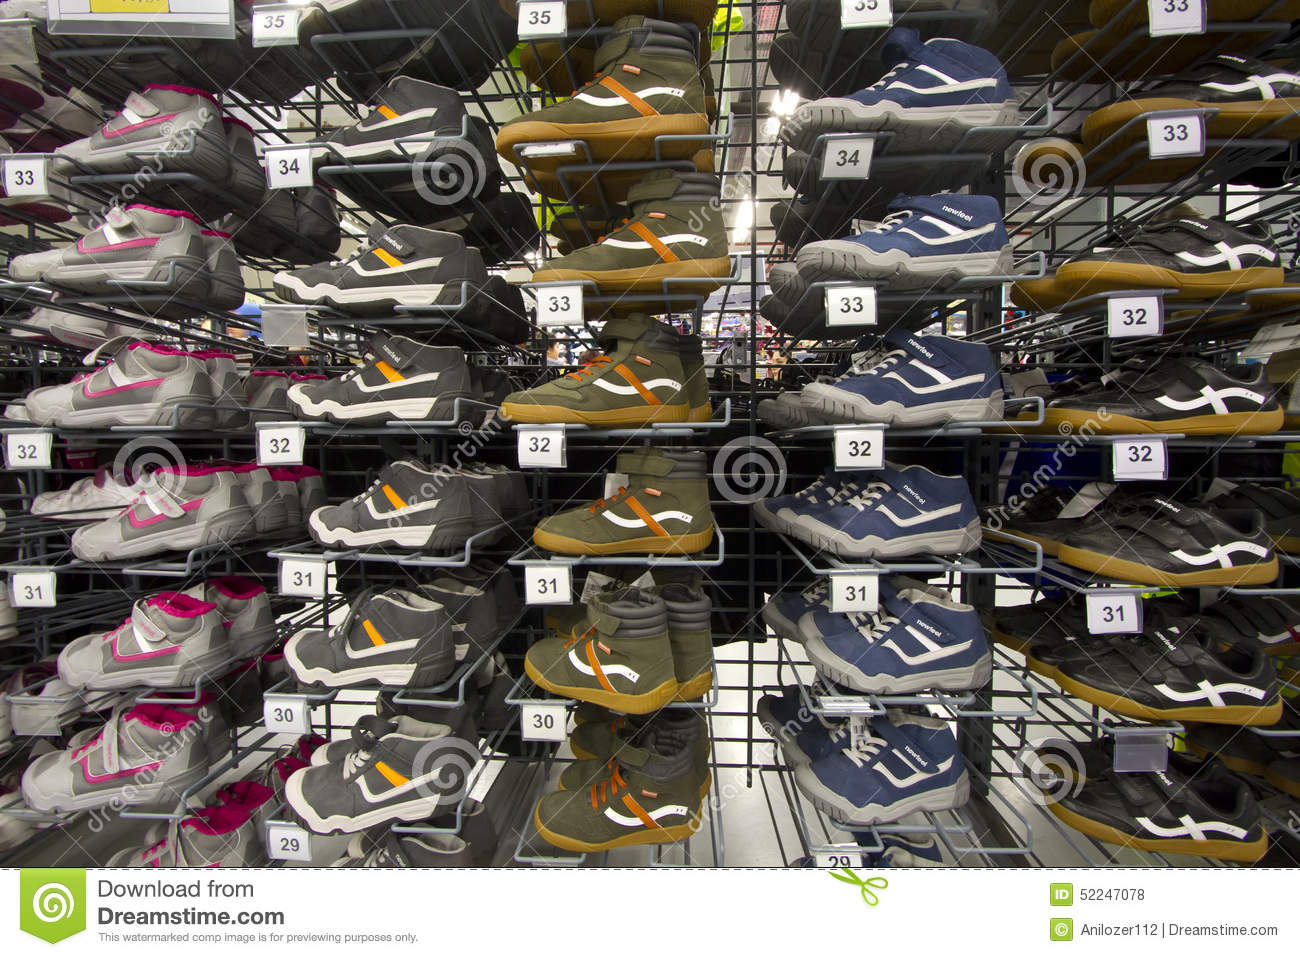 Branded Sneakers And Jogging Shoes